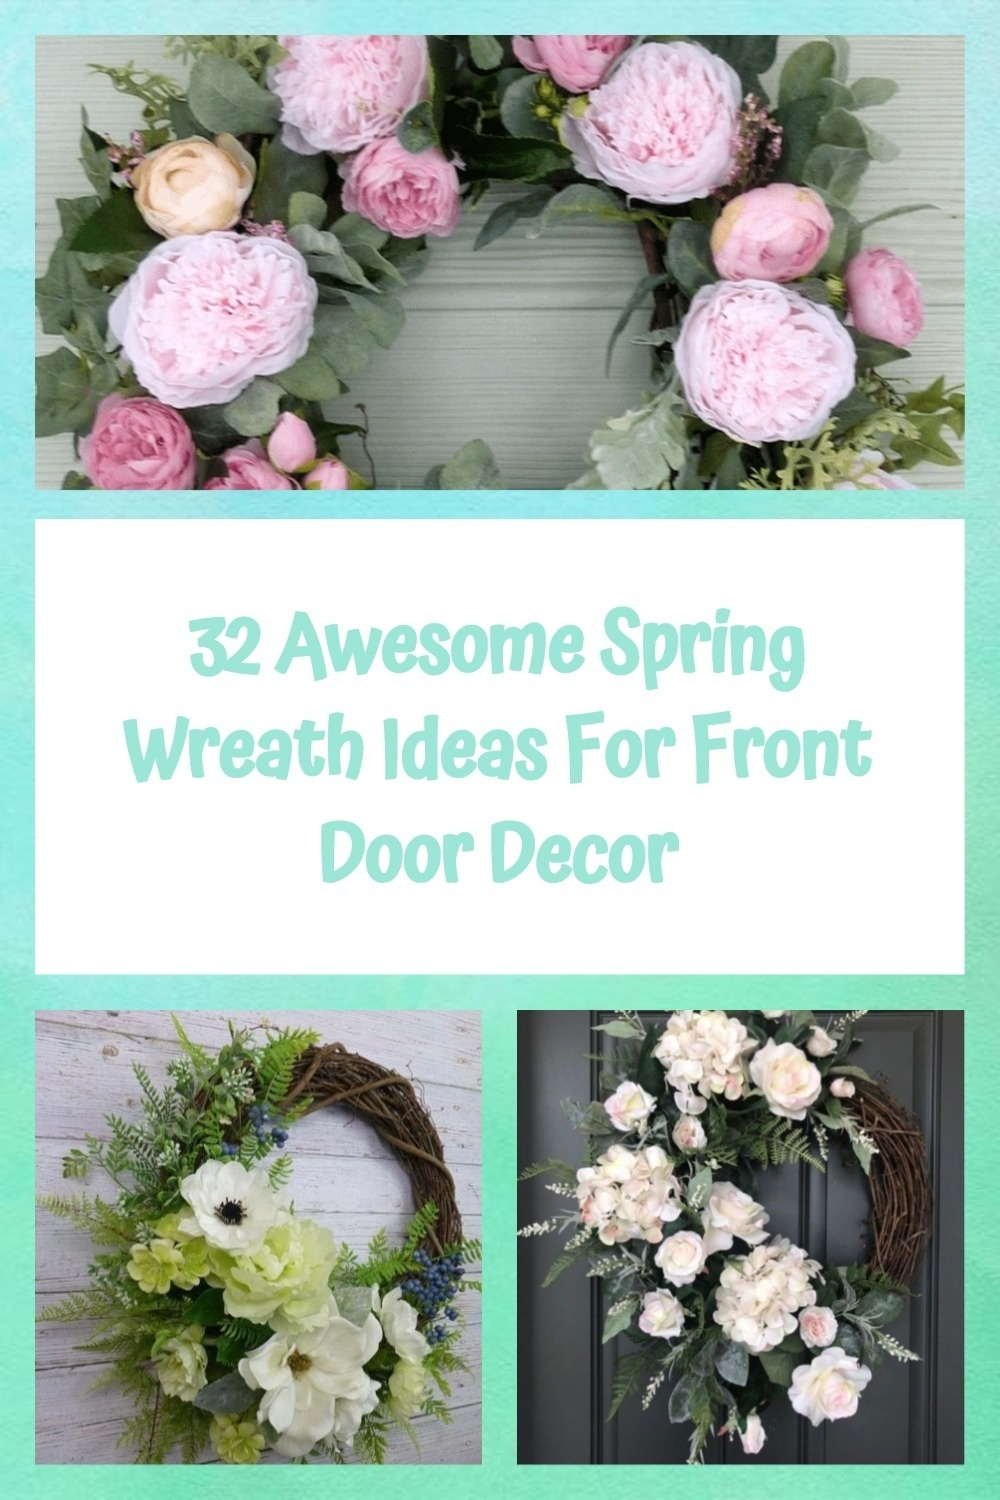 32 Awesome Spring Wreath Ideas For Front Door Decor